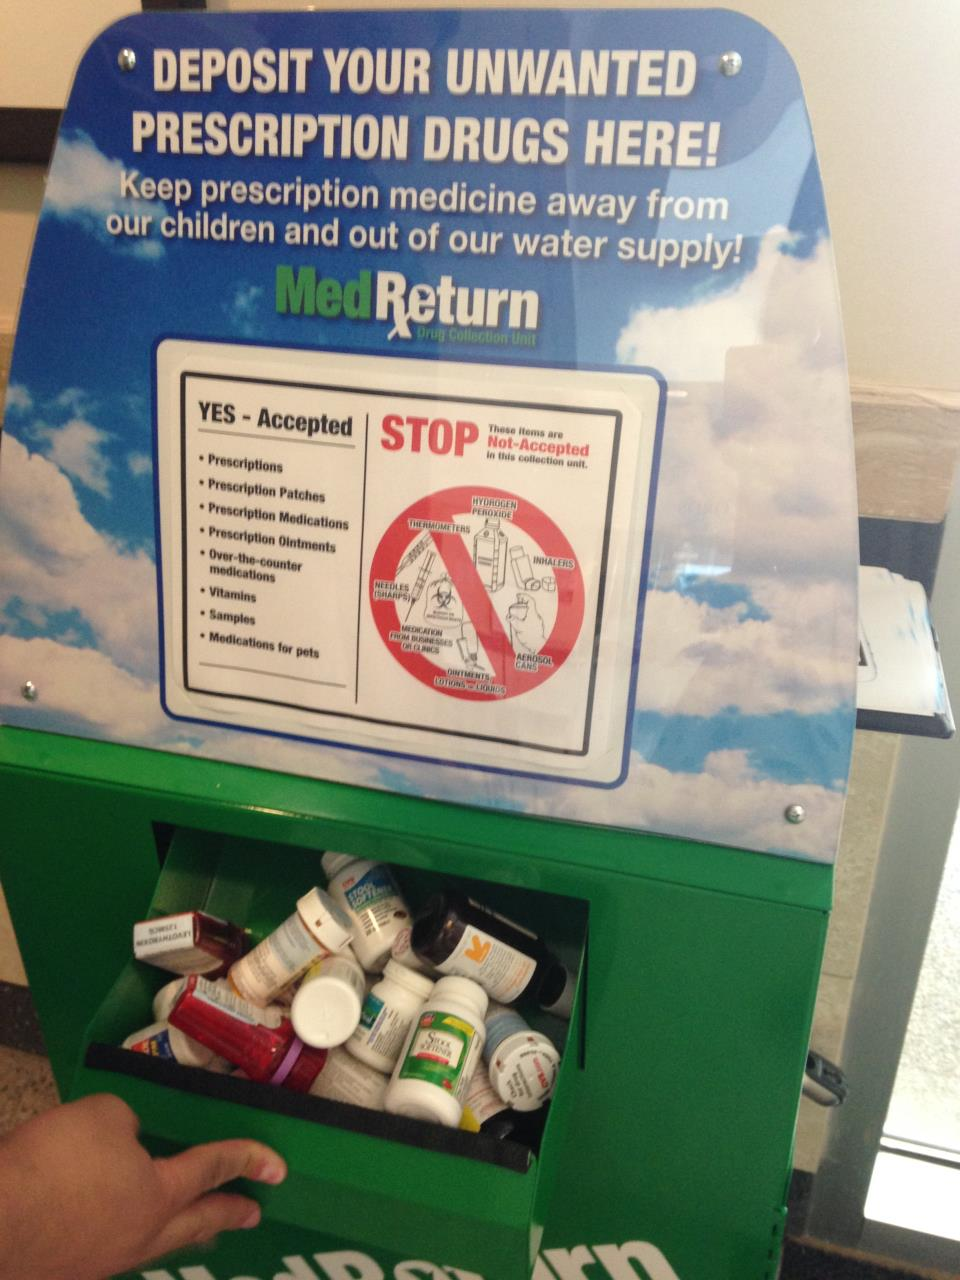 Keeping Prescription Medications out of the Water Supply